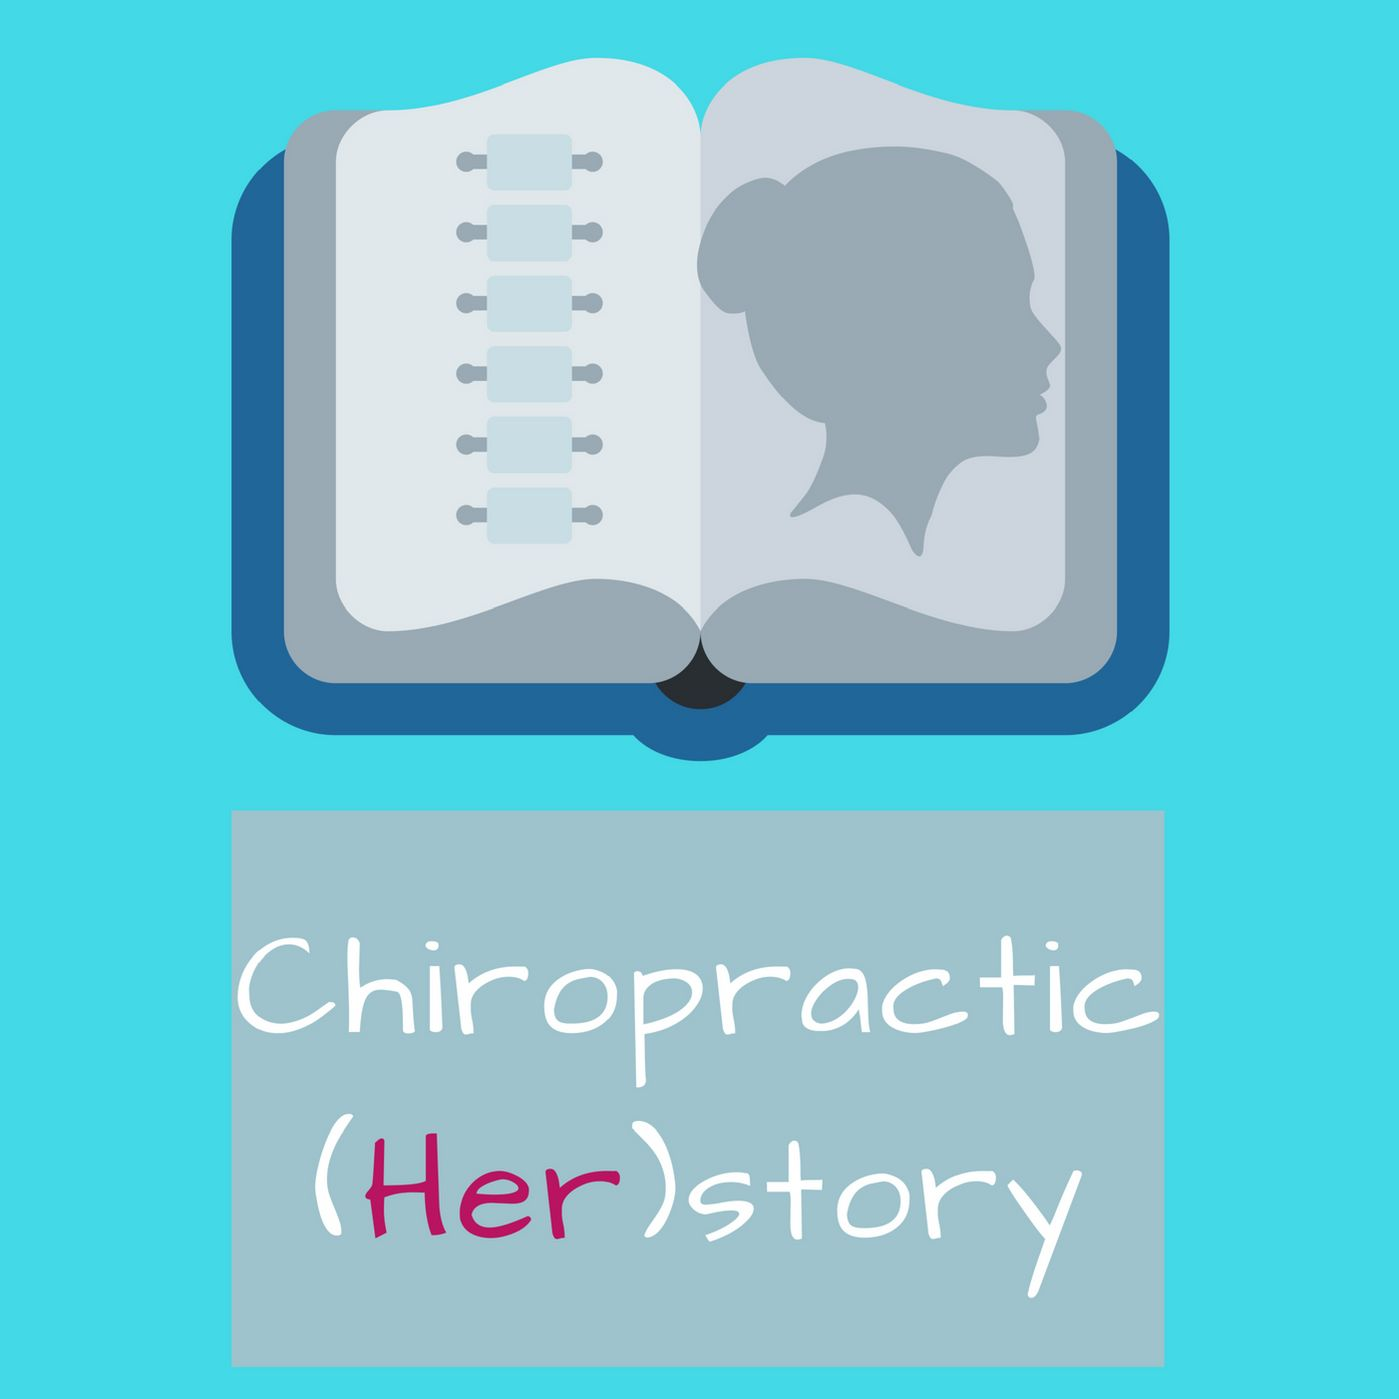 Dr. Jillian Johnson- Chiropractic (Her)story Episode 54